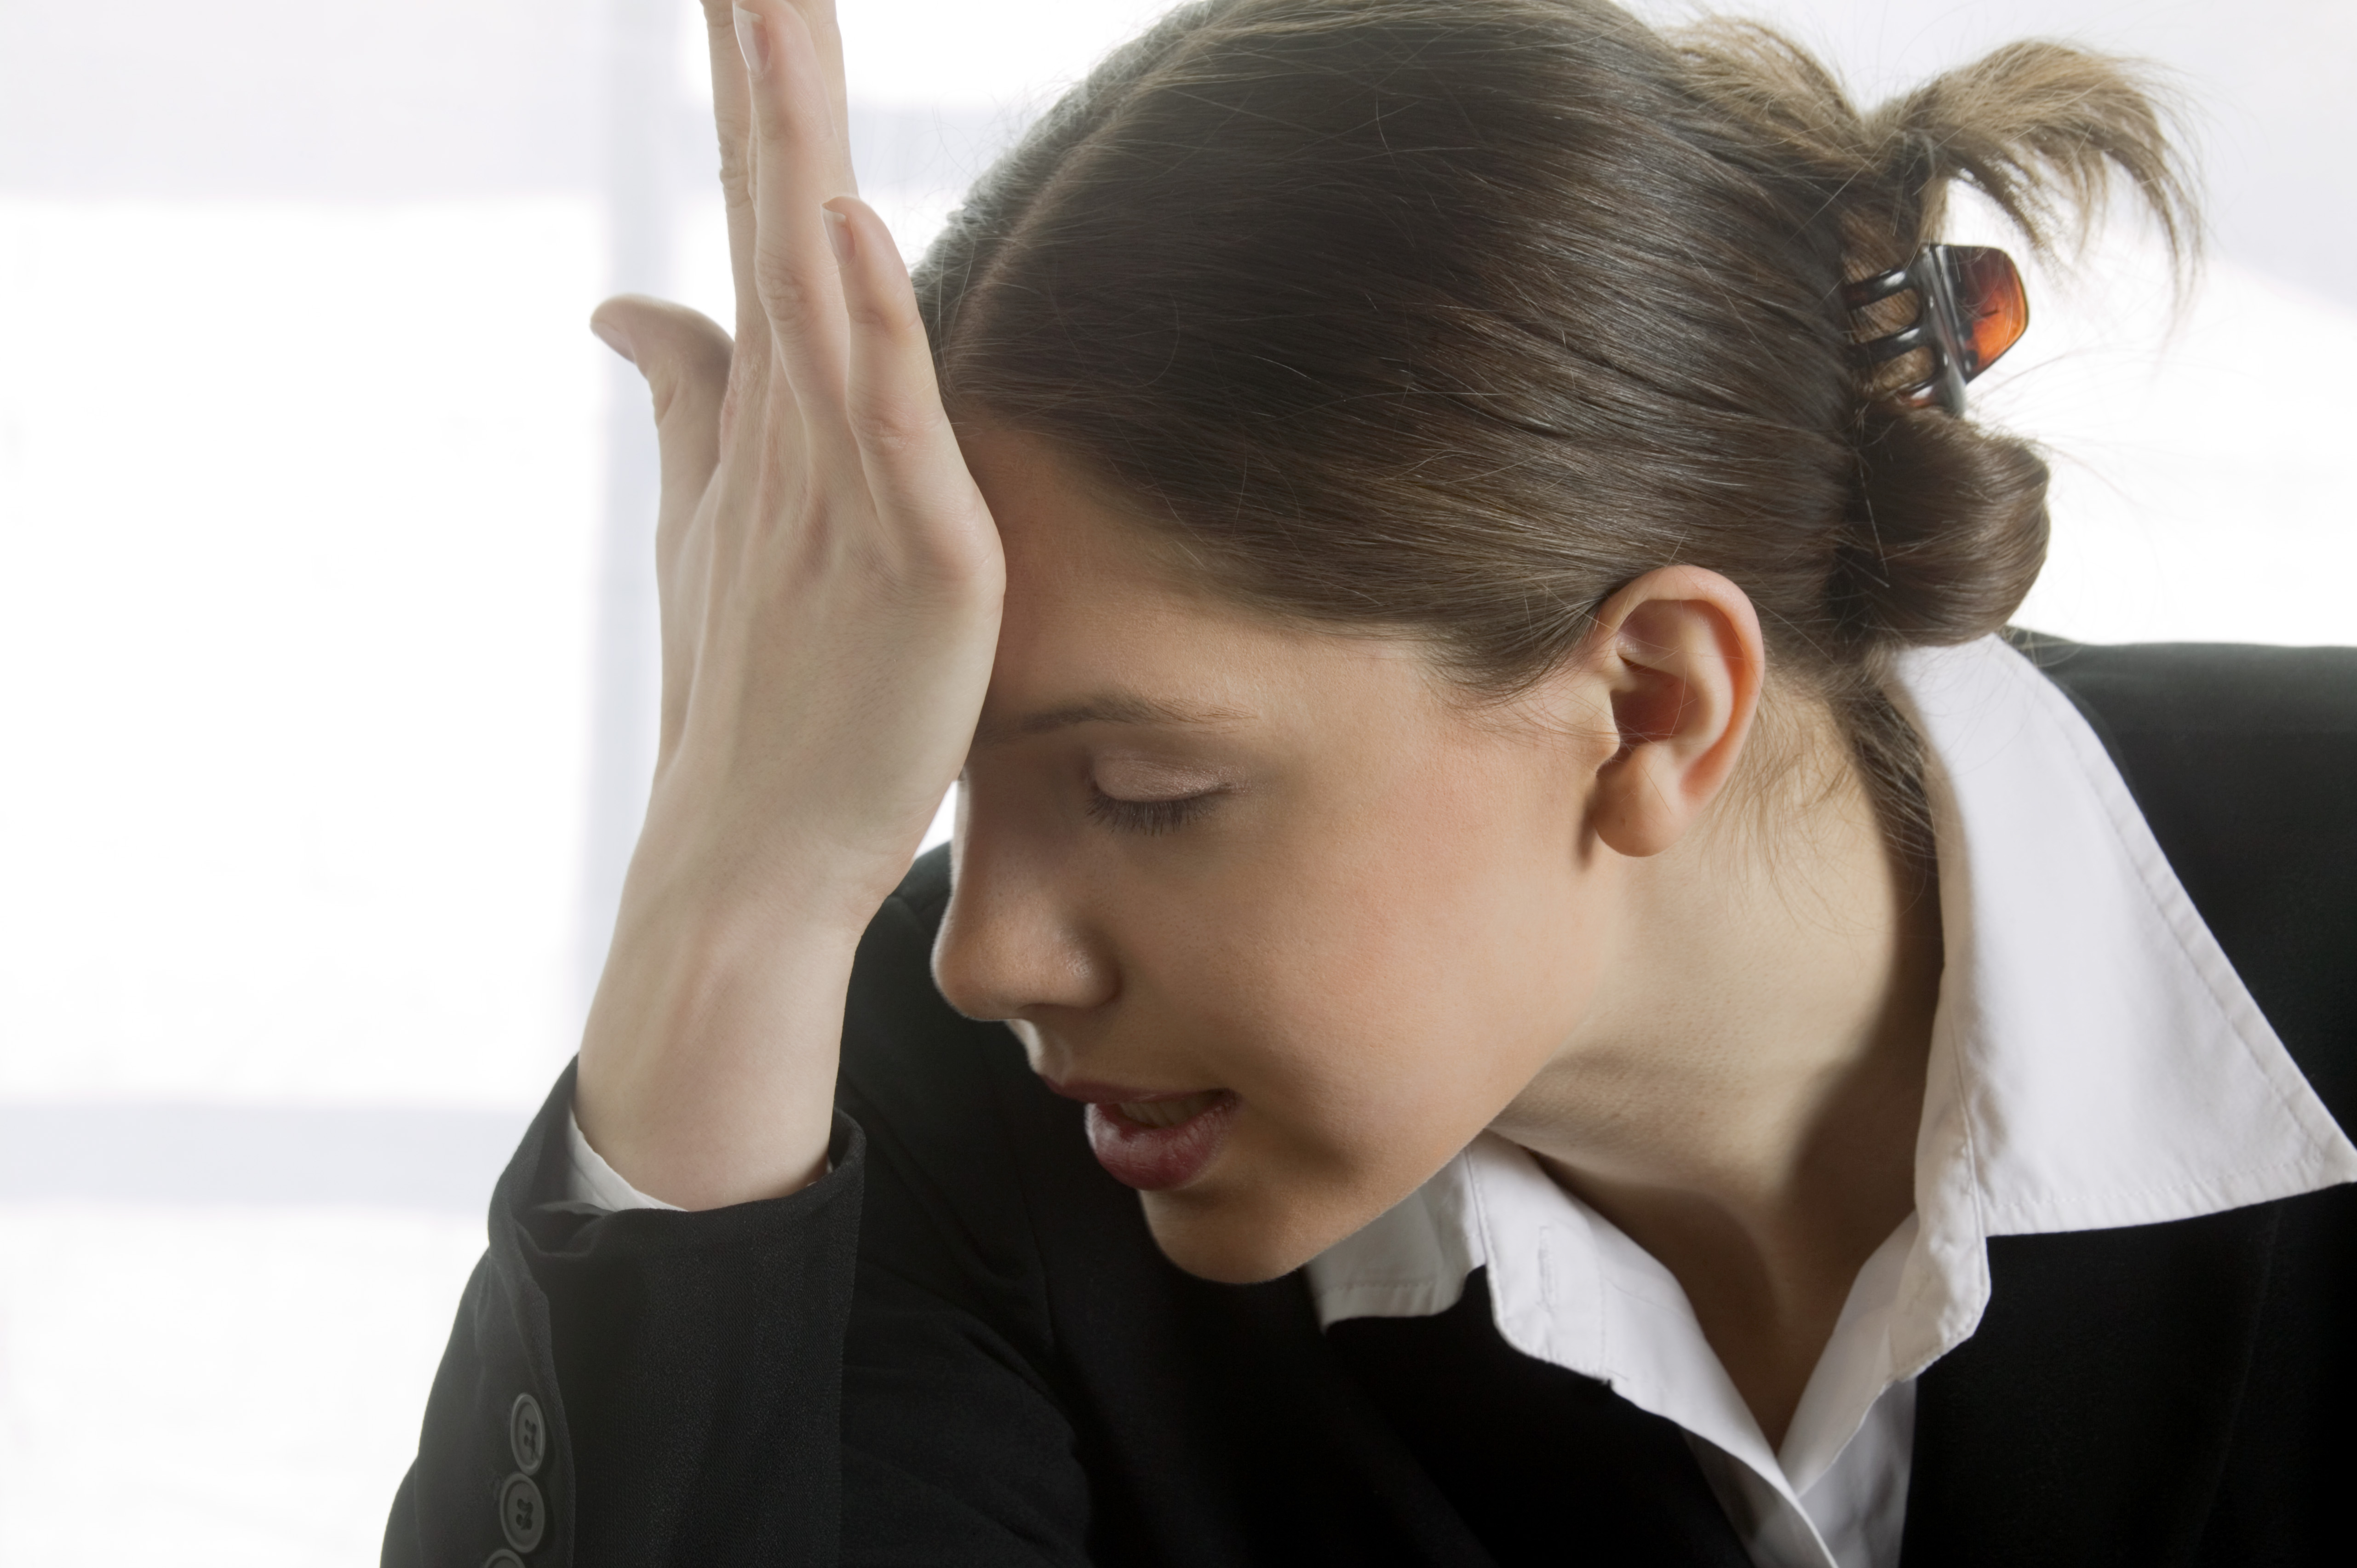 Stressed woman slapping her head